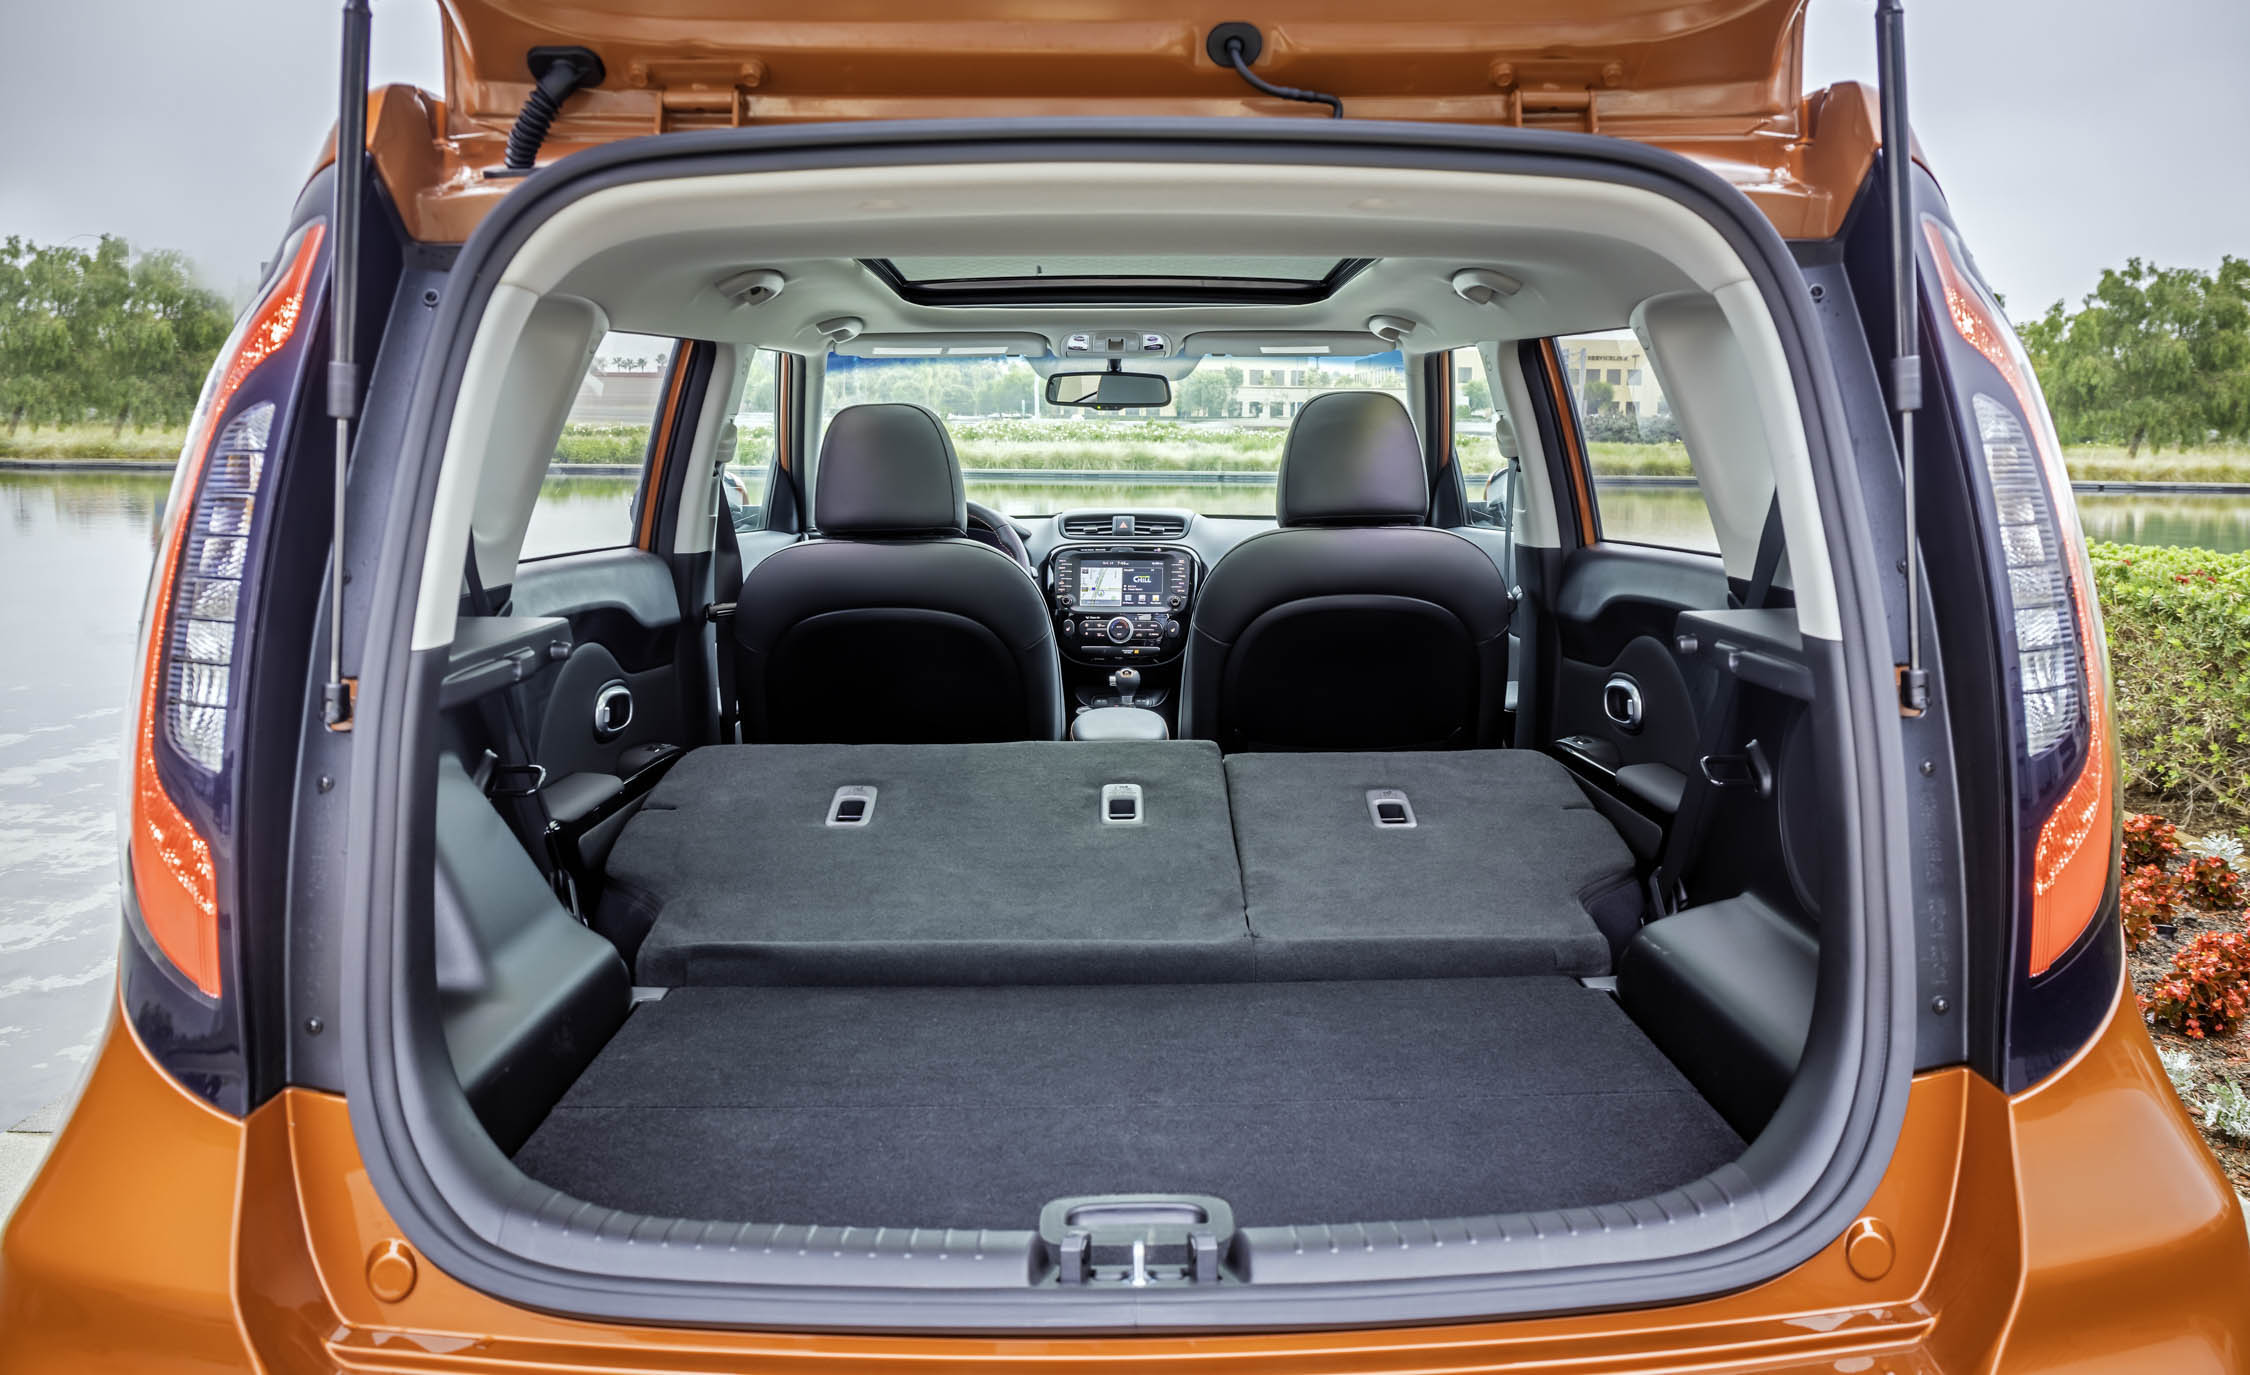 2017 Kia Soul Turbo Interior View Cargo (View 13 of 15)